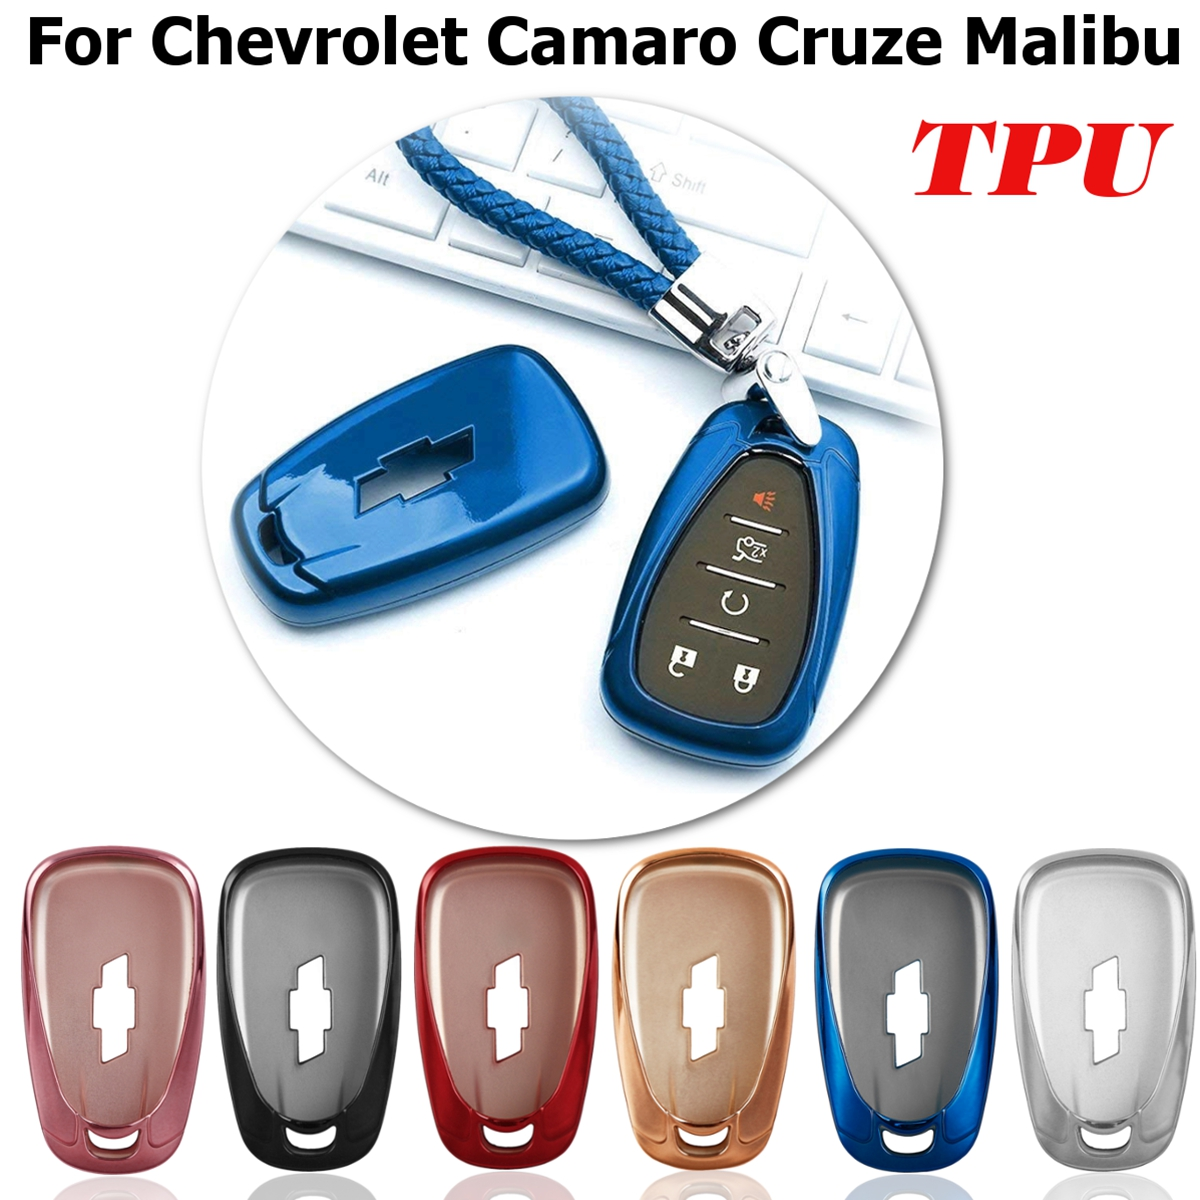 New Soft Tpu Car Key Covers Key Case Fob Shell For Chevrolet Cruze Spark Sonic Camaro Volt Bolt Trax Malibu Cruze Cat-styling Buy One Get One Free Key Case For Car Automobiles & Motorcycles